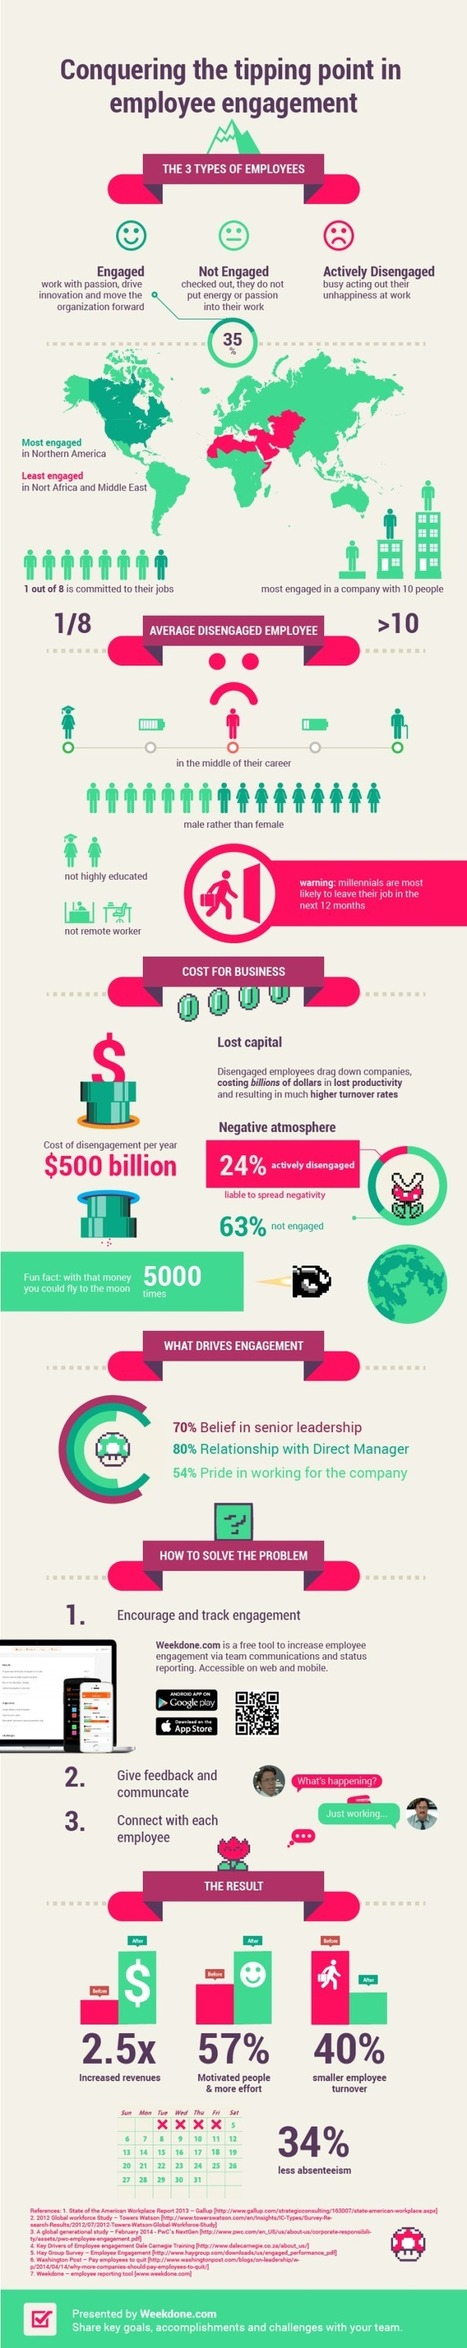 How to Conquer the Tipping Point in Employee Engagement [INFOGRAPHIC] | Mind Your Business! | Scoop.it